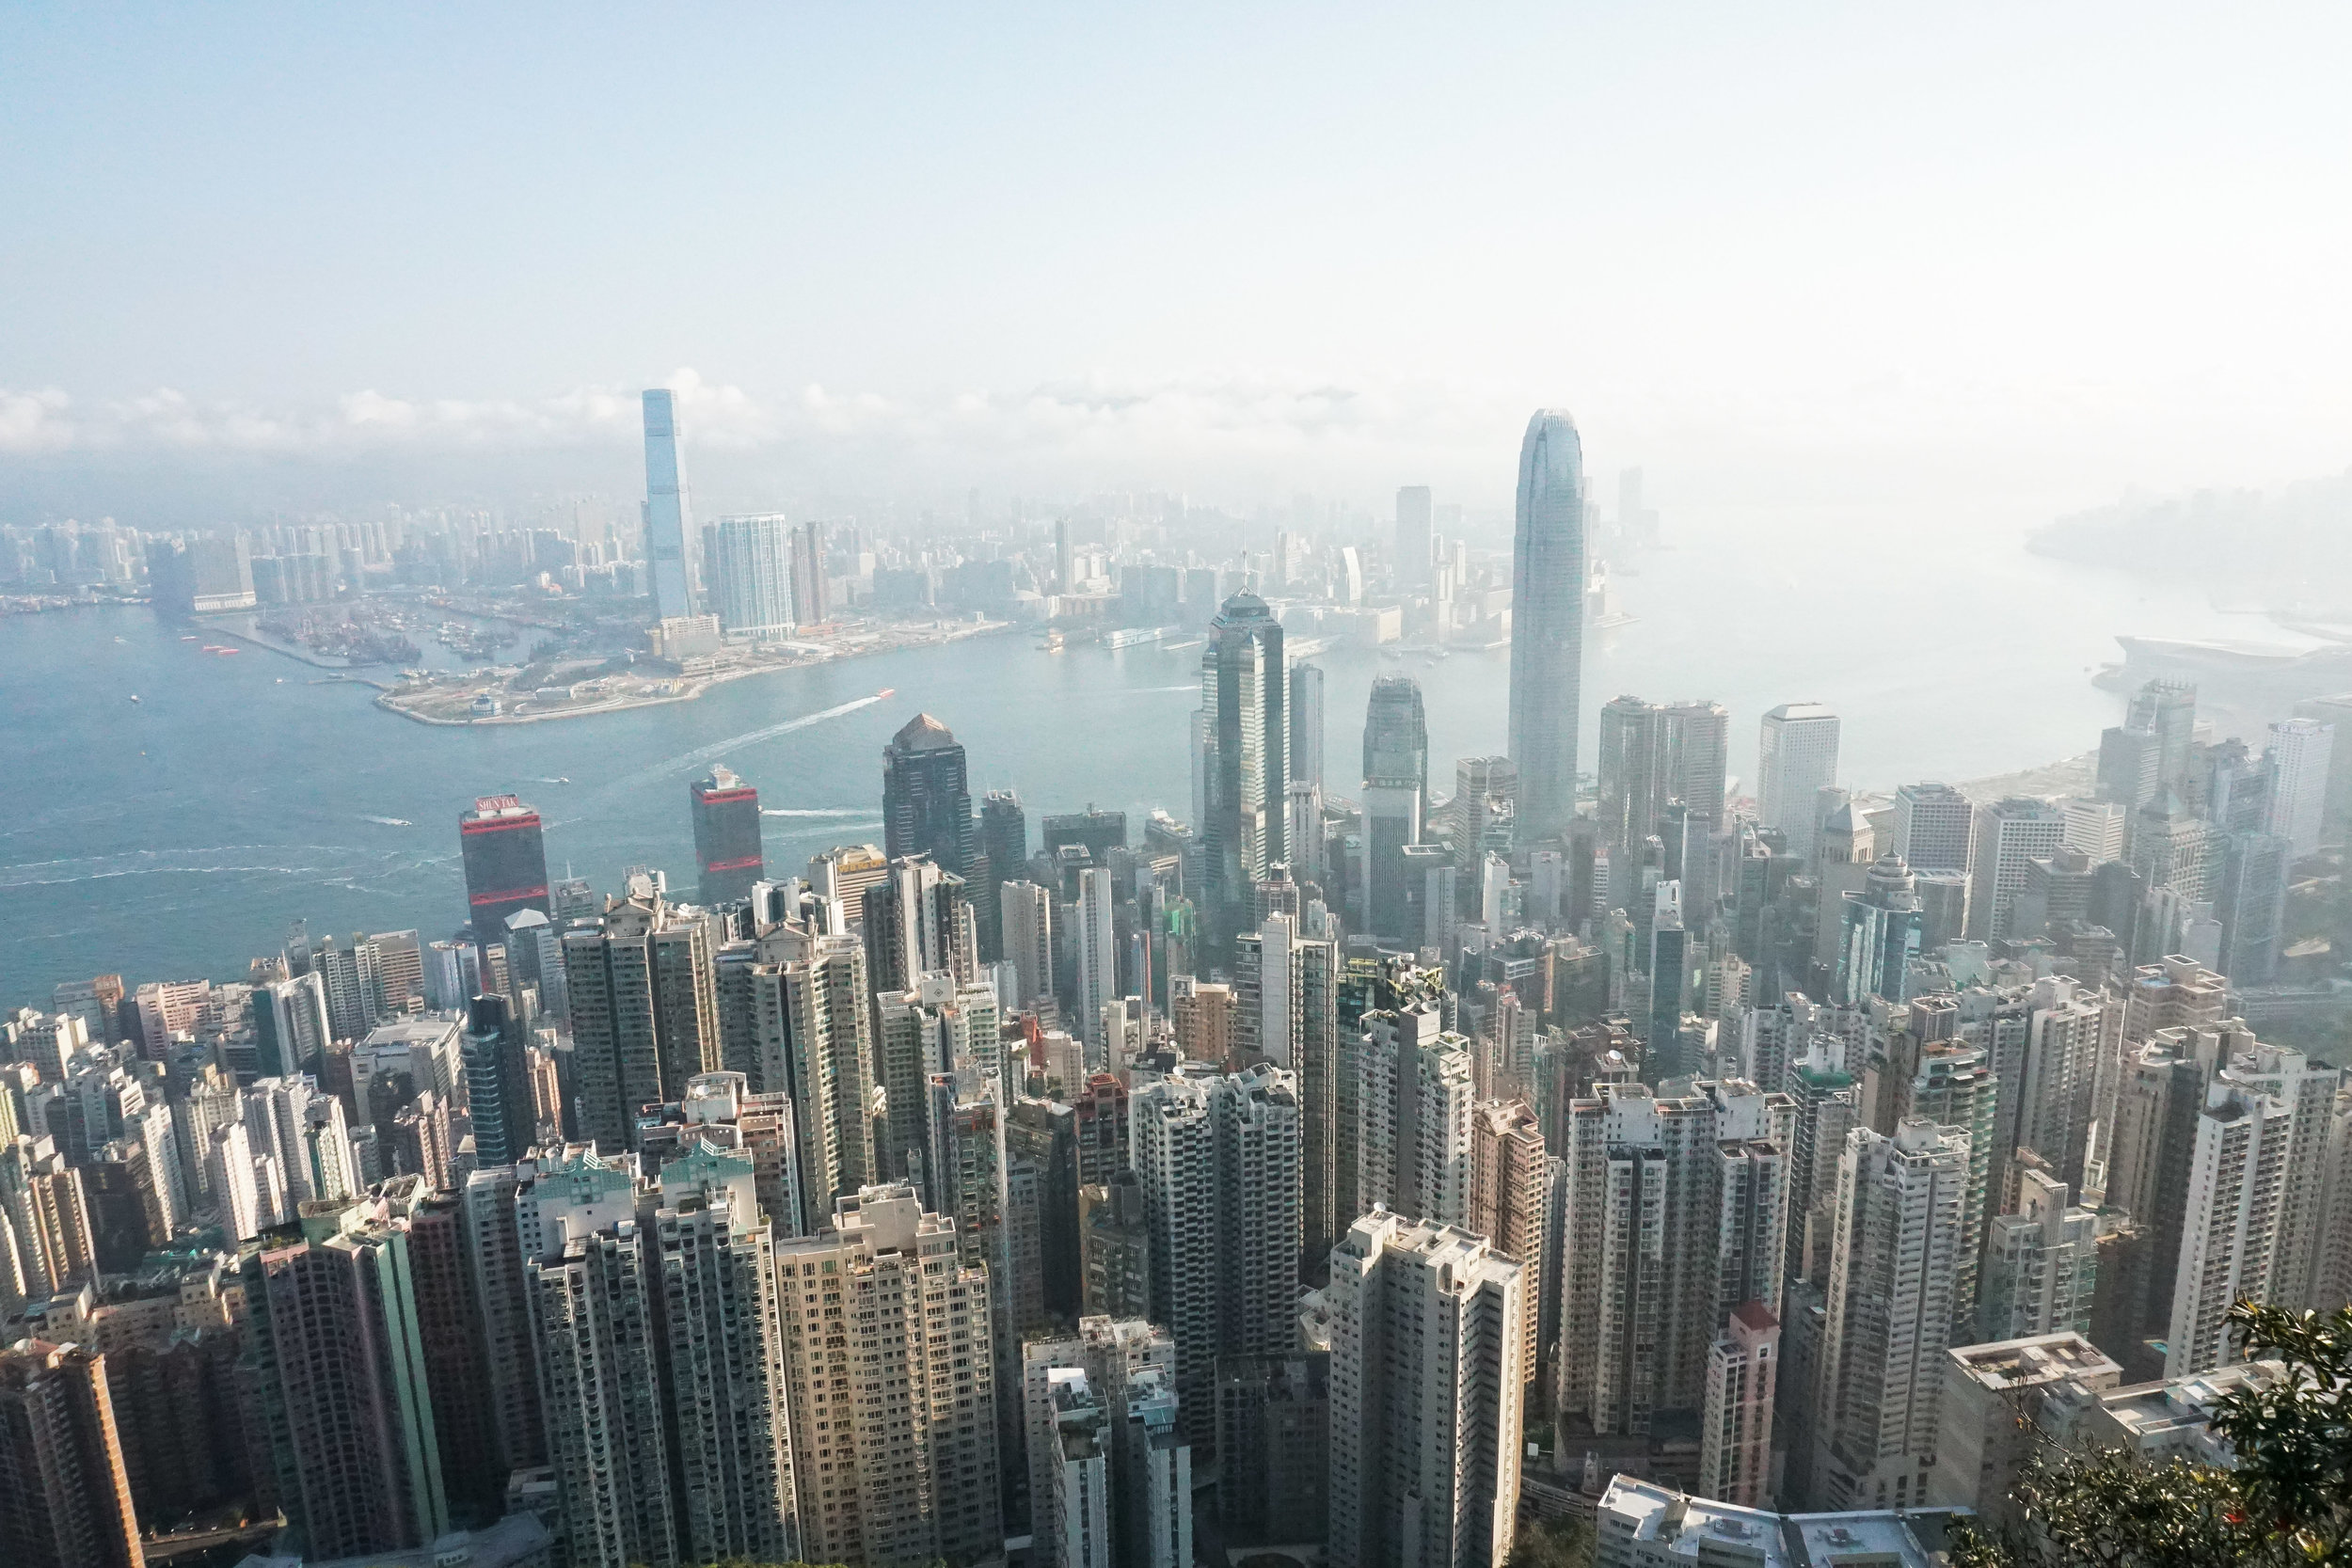 curio.trips.hong.kong.sunny.peak.view.landscape-2.jpg